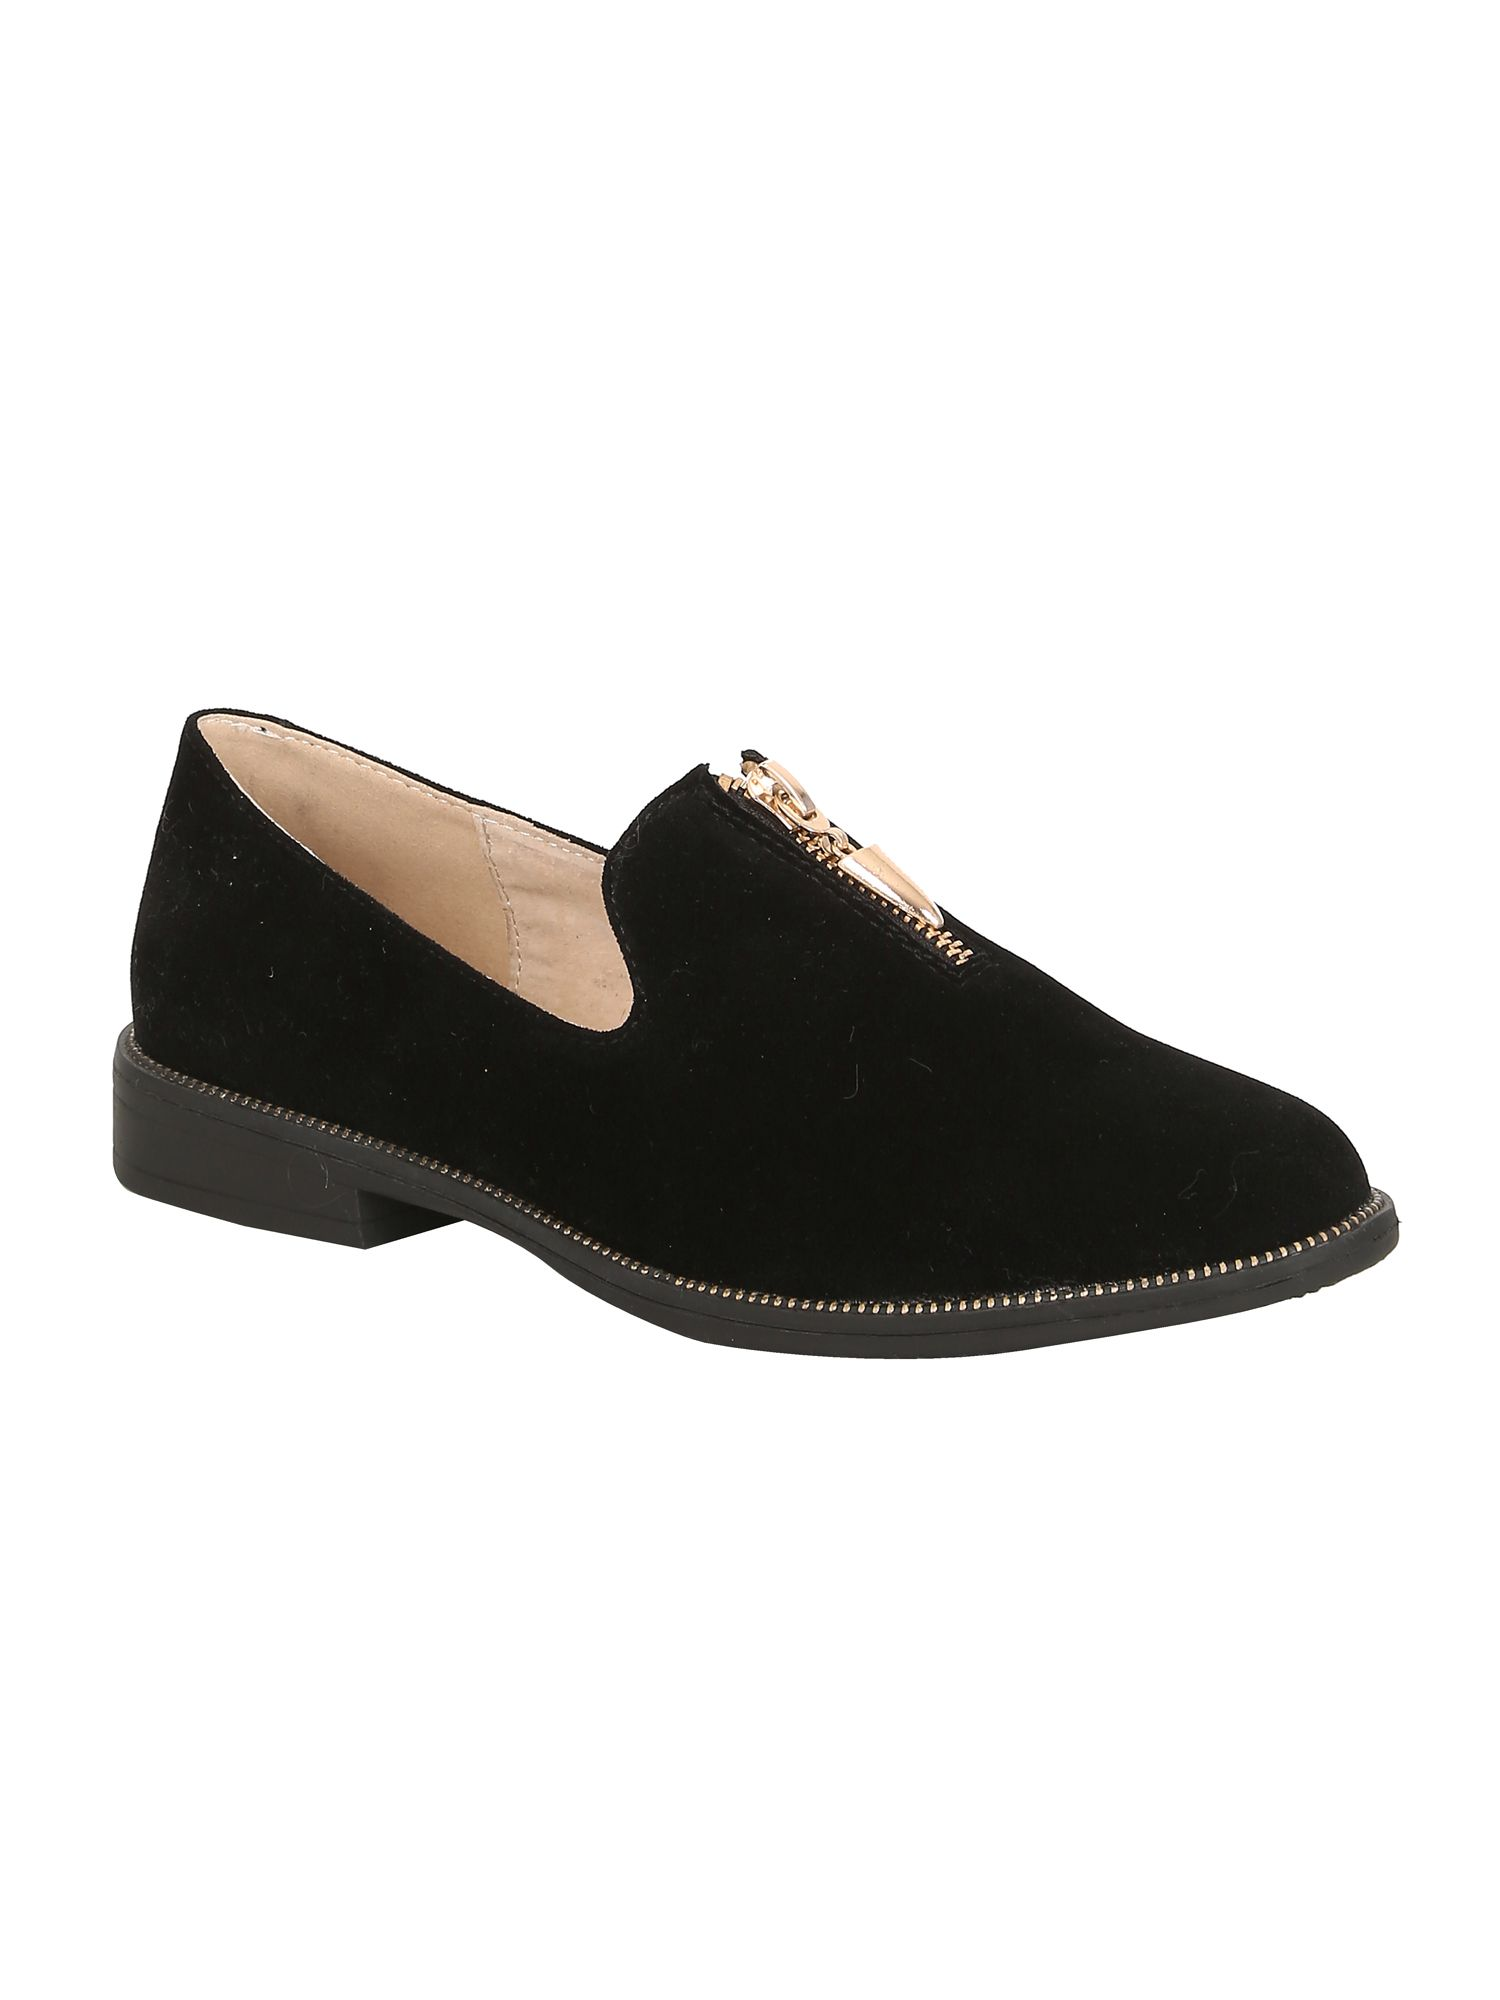 Keddo Keddo Zip slipper, Black